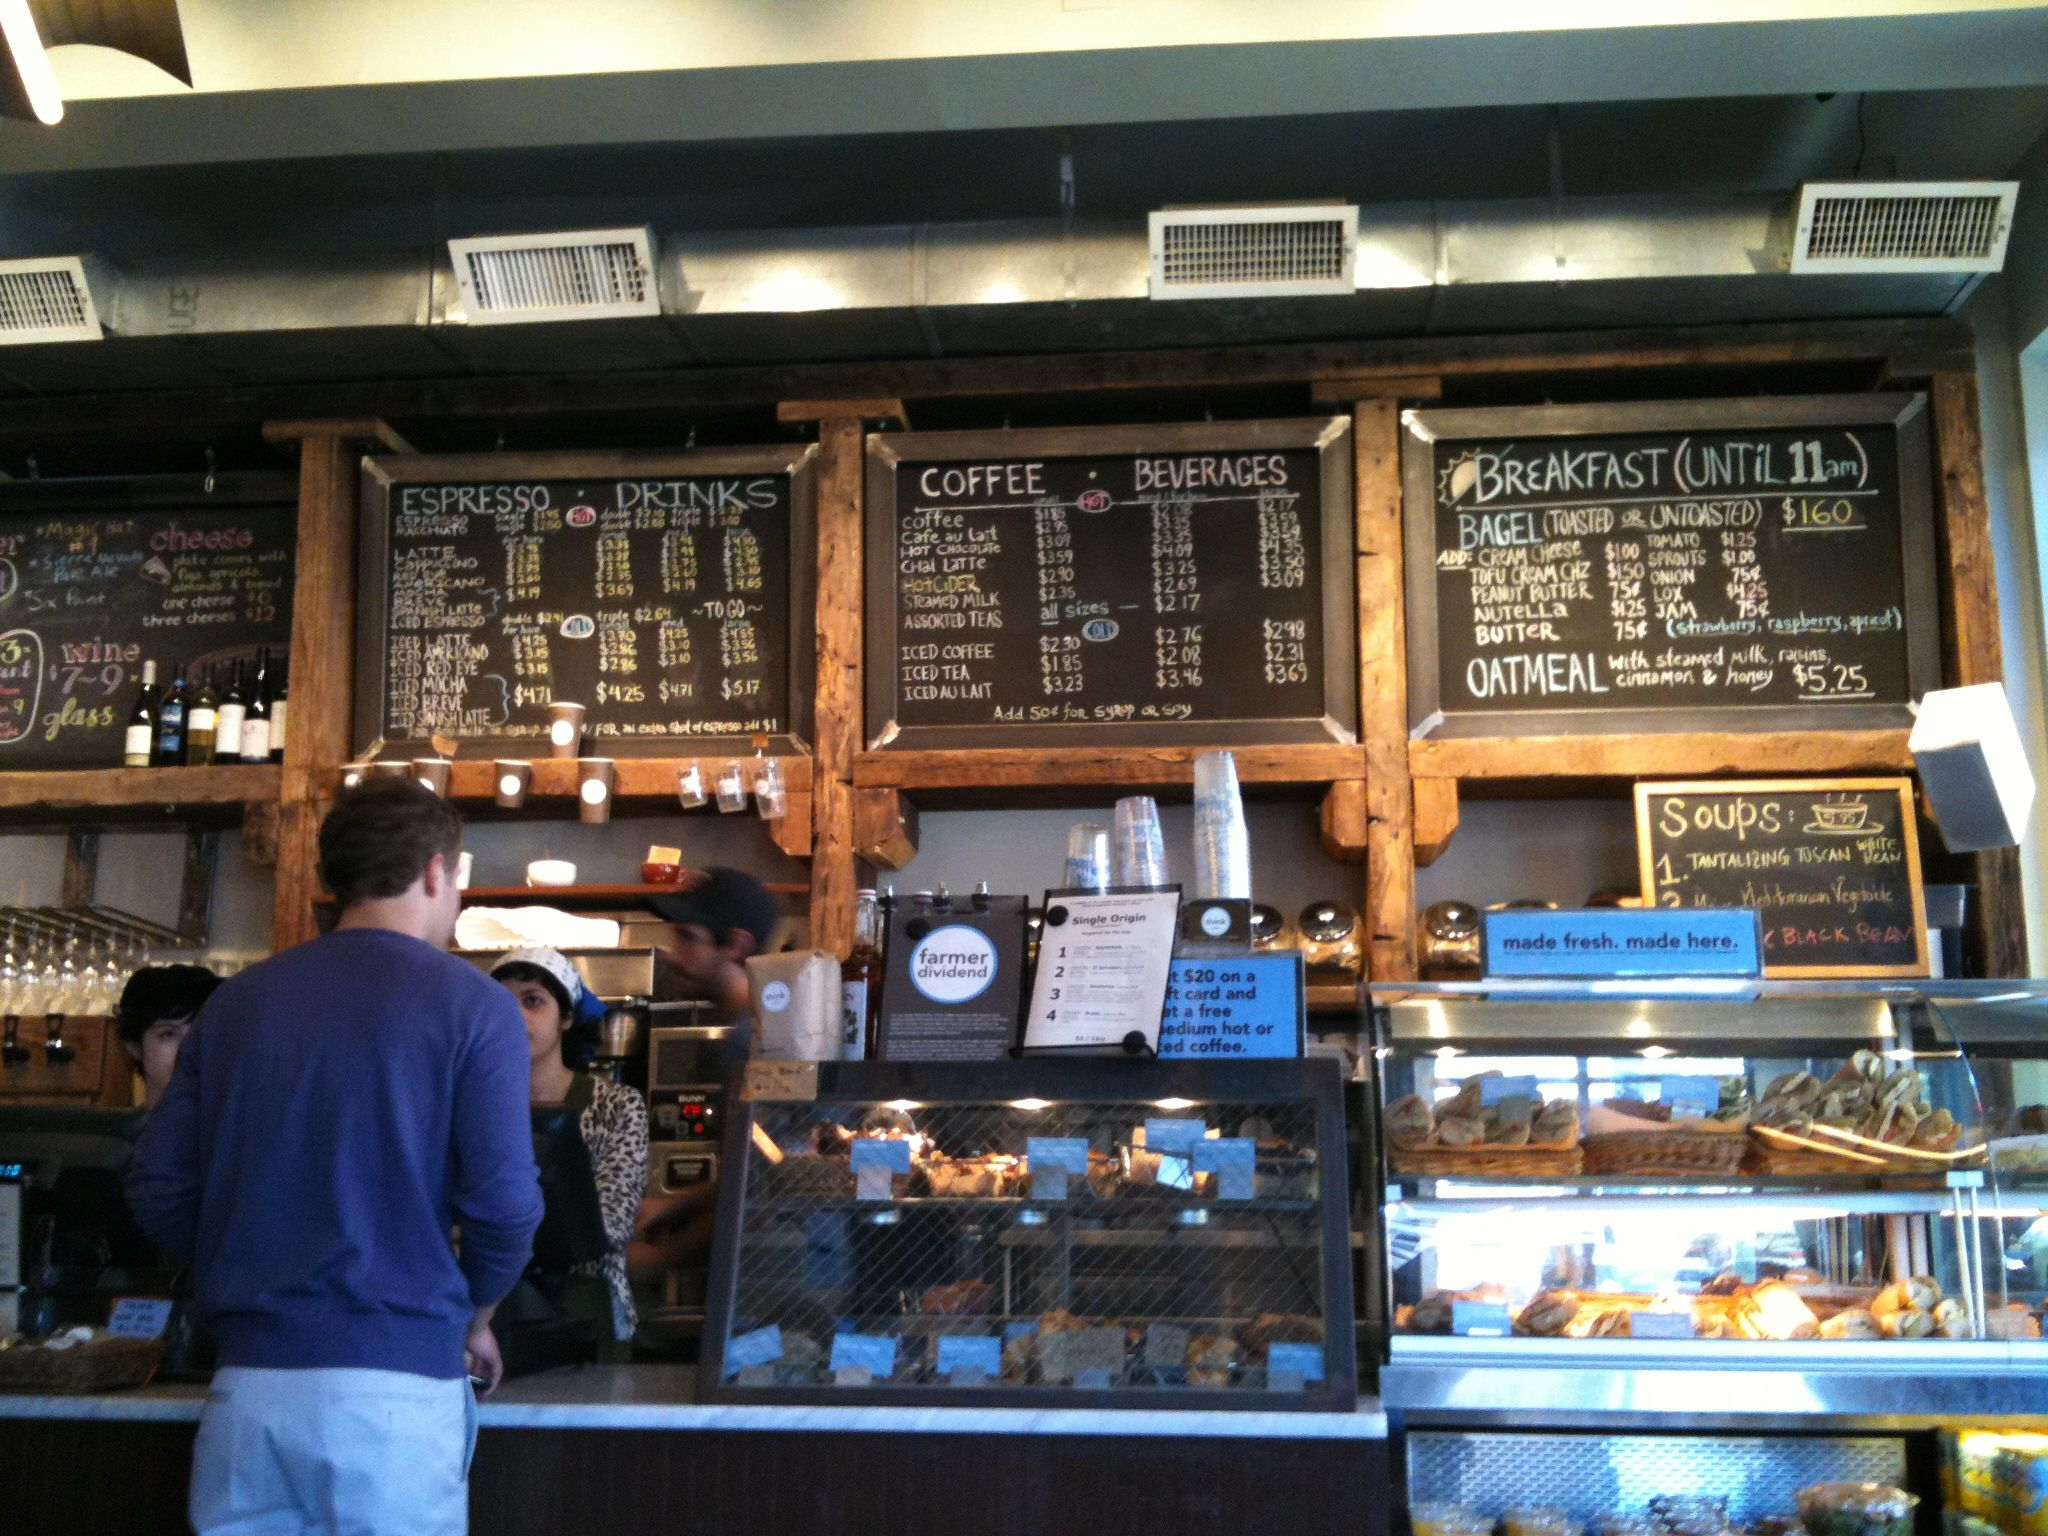 Coffee shop with price board and people | Chalk board menu ...